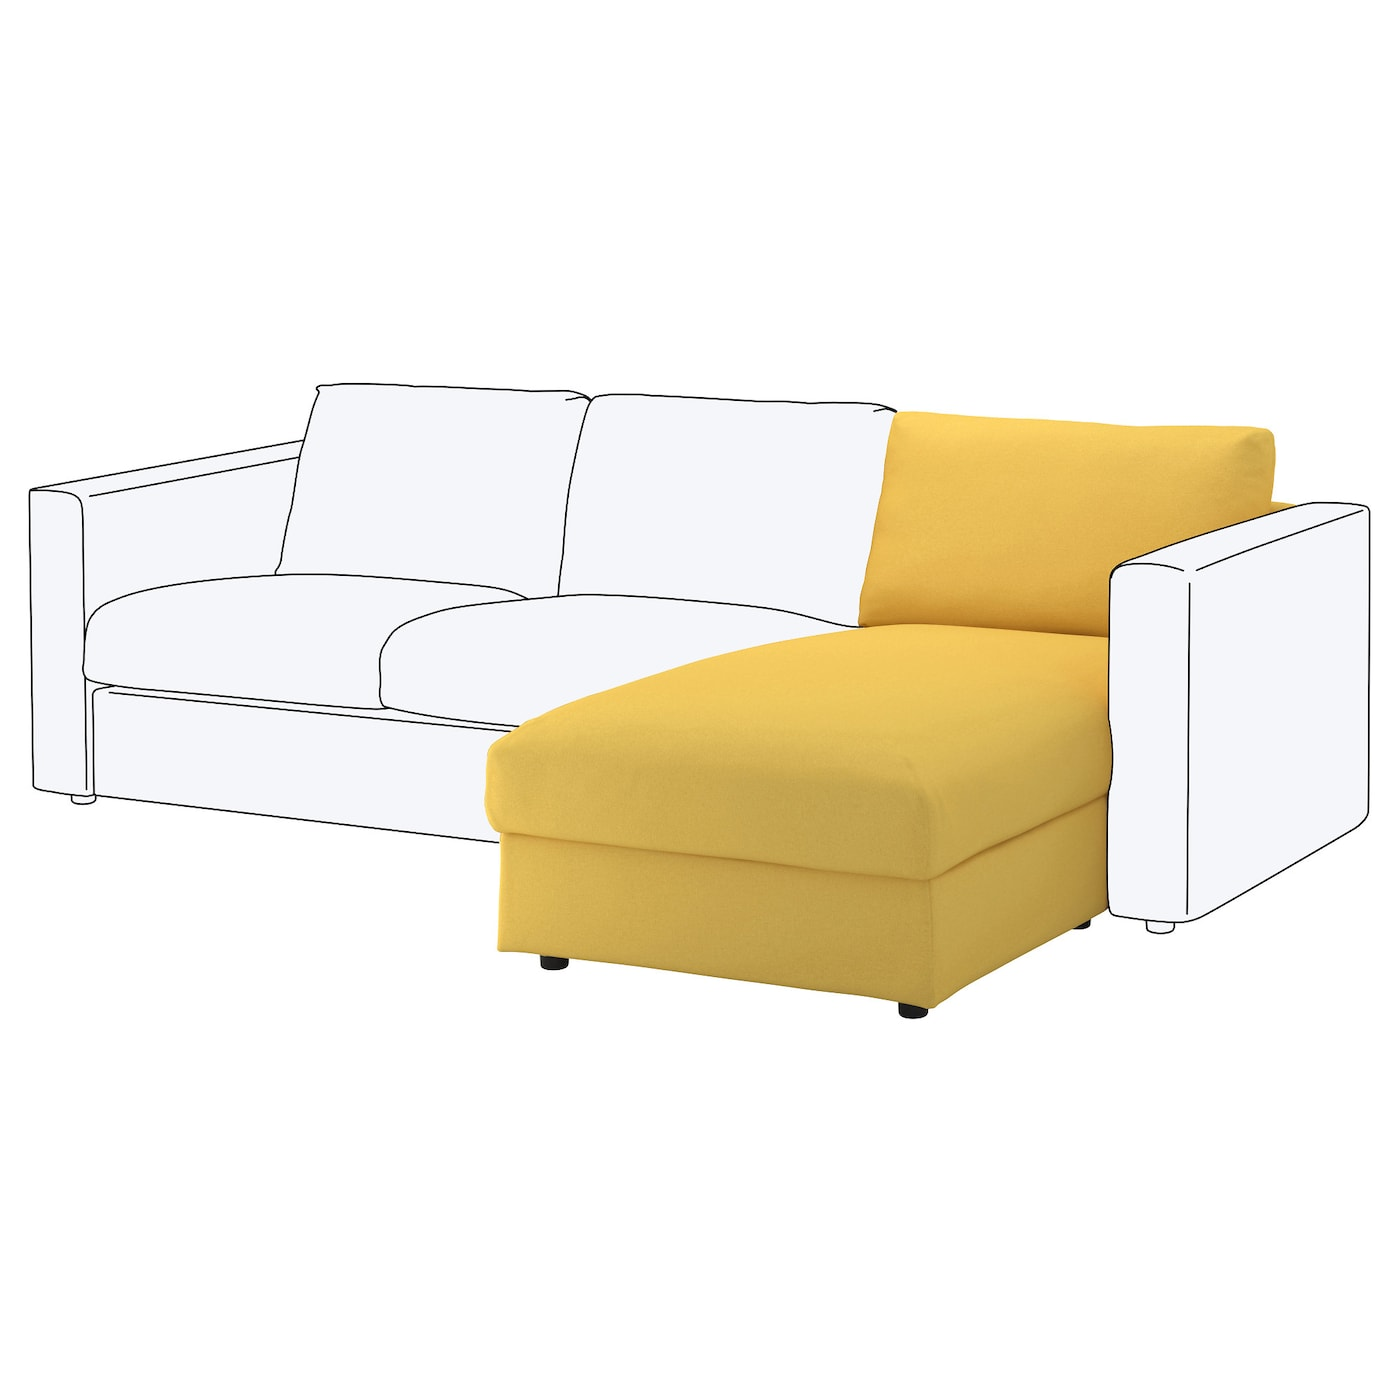 IKEA VIMLE chaise longue element